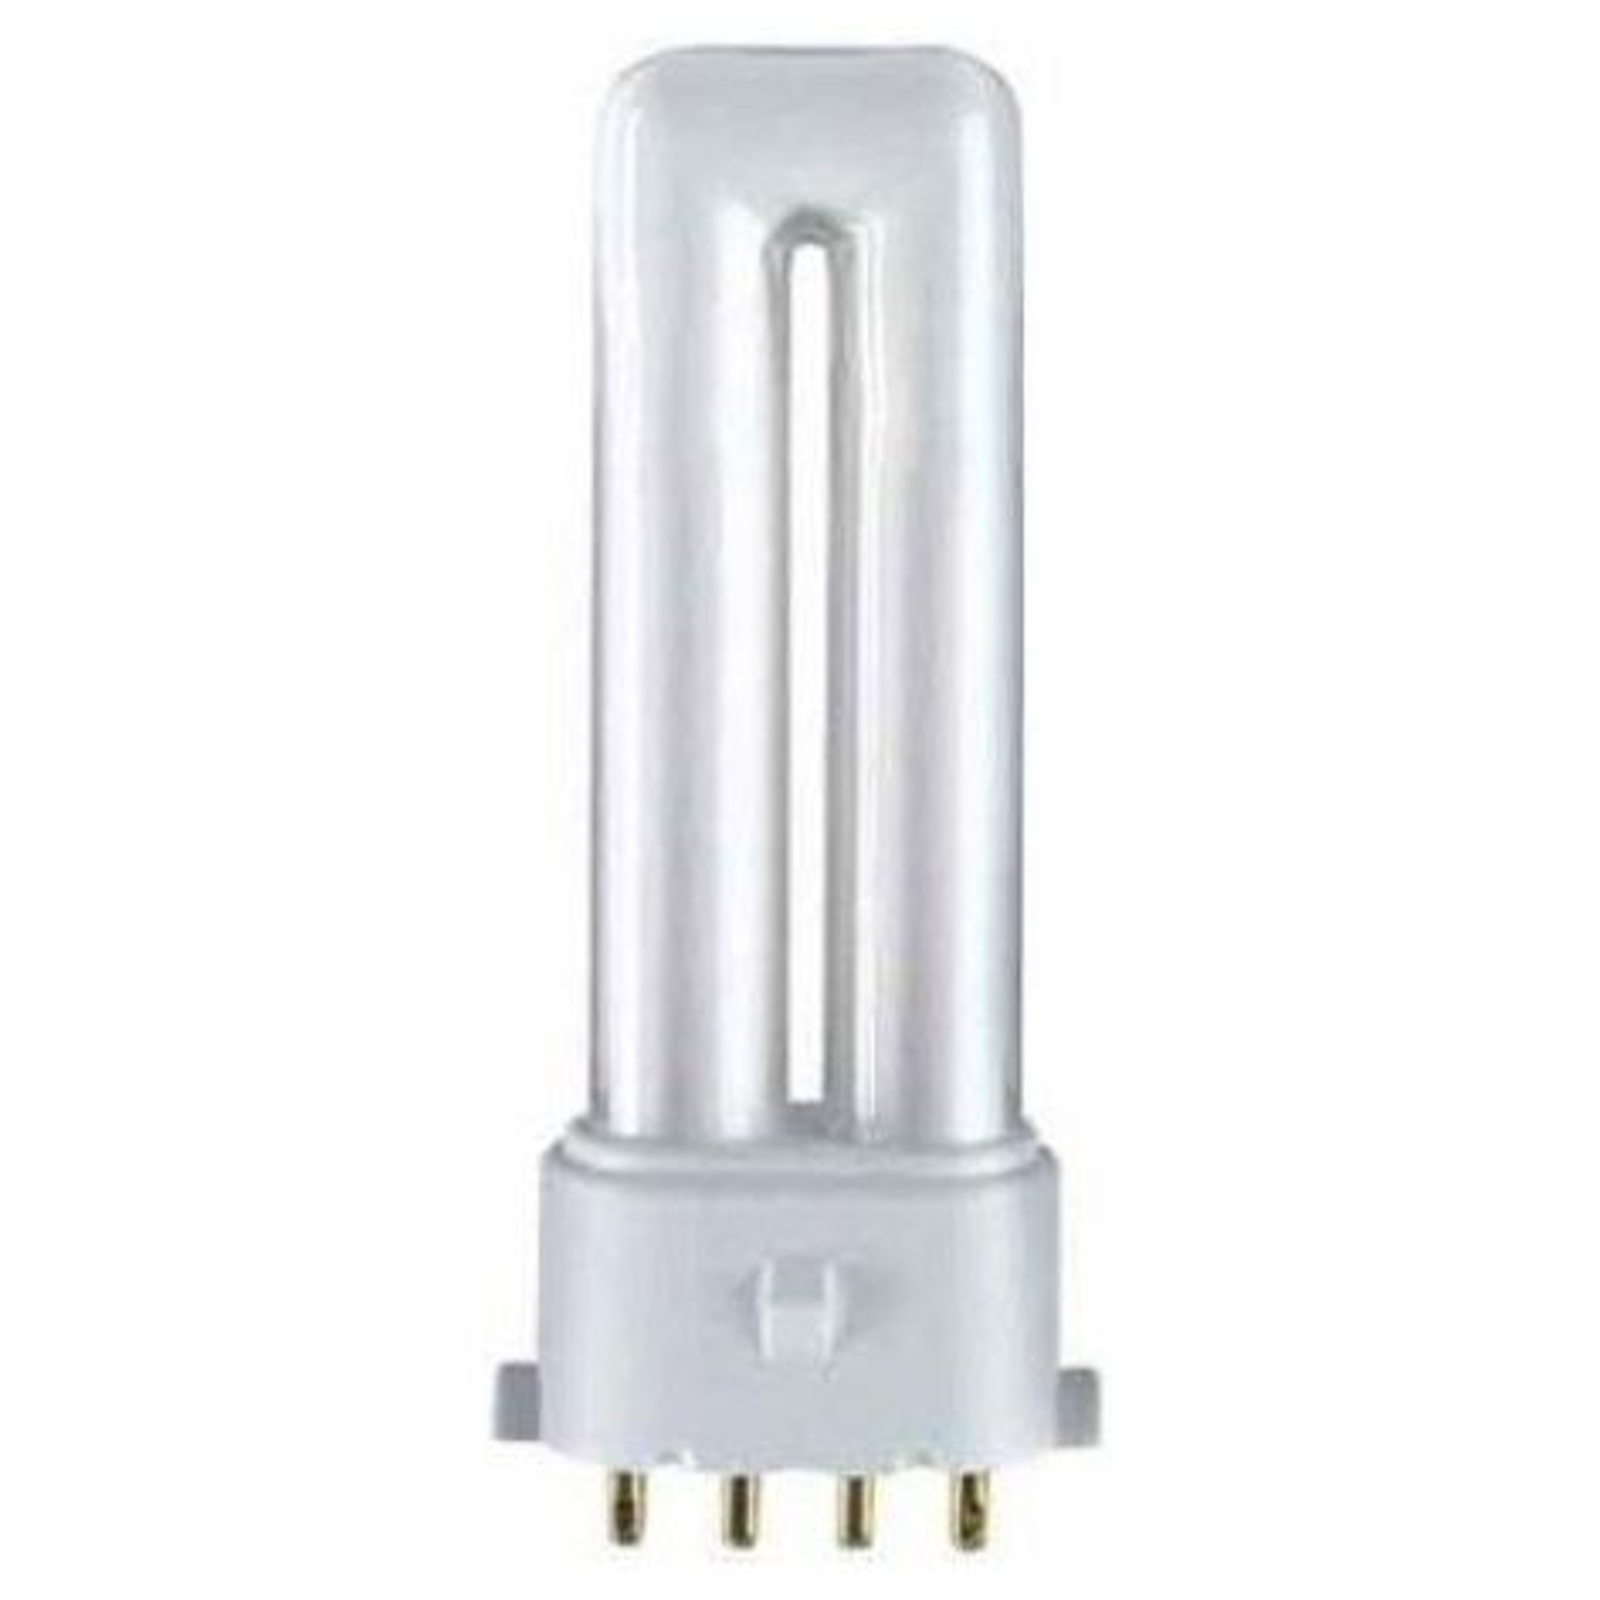 2G7 compact fluorescent bulb PHILIPS Master4Pin_7530239_1